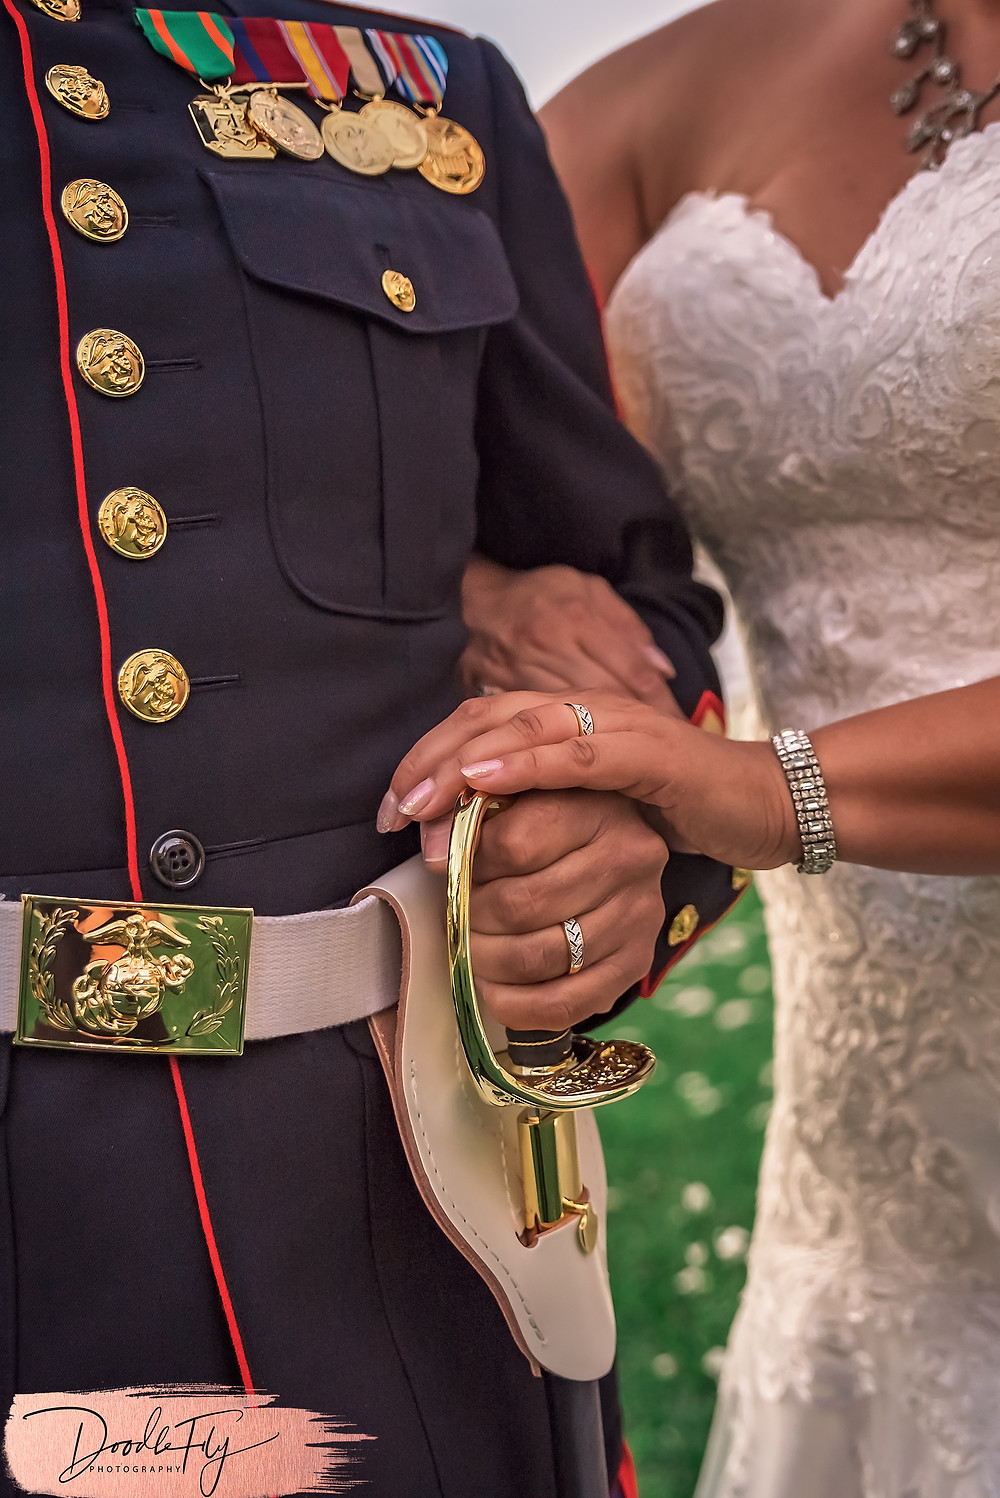 Doodle FLy Photography wedding photo of bride and groom with Navy Uniform and gown with wedding rings  at Burroughs Home Venue in Fort Myers Florida